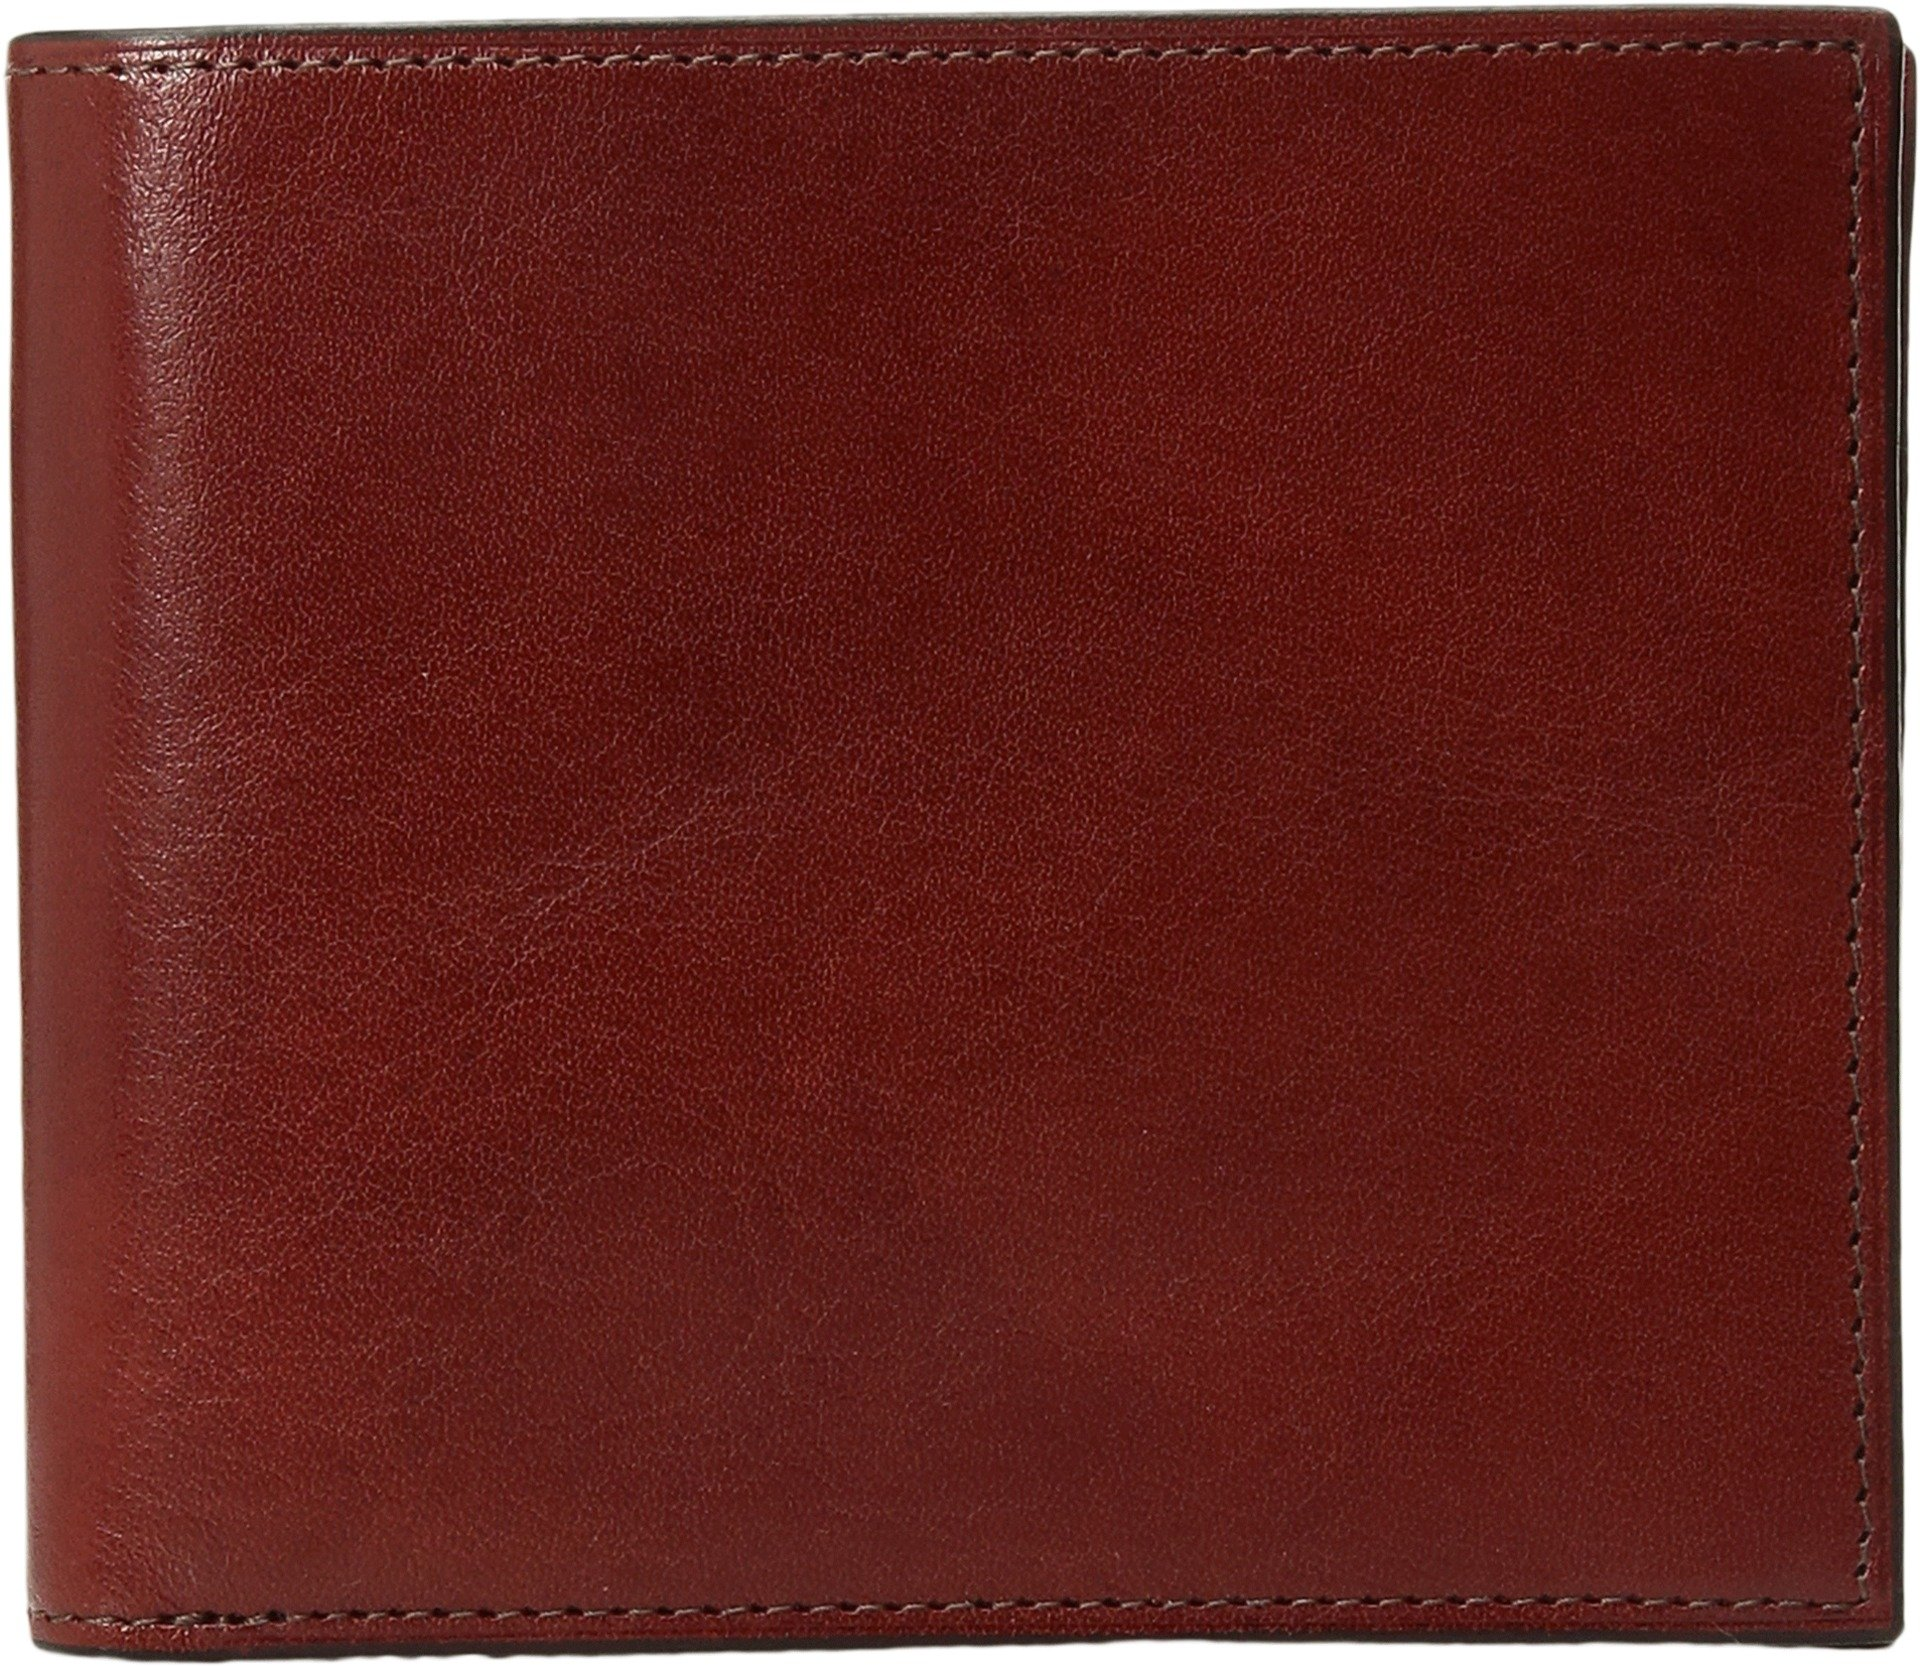 Bosca Men's Old Leather Collection - Eight-Pocket Deluxe Executive Wallet w/Passcase (Cognac)